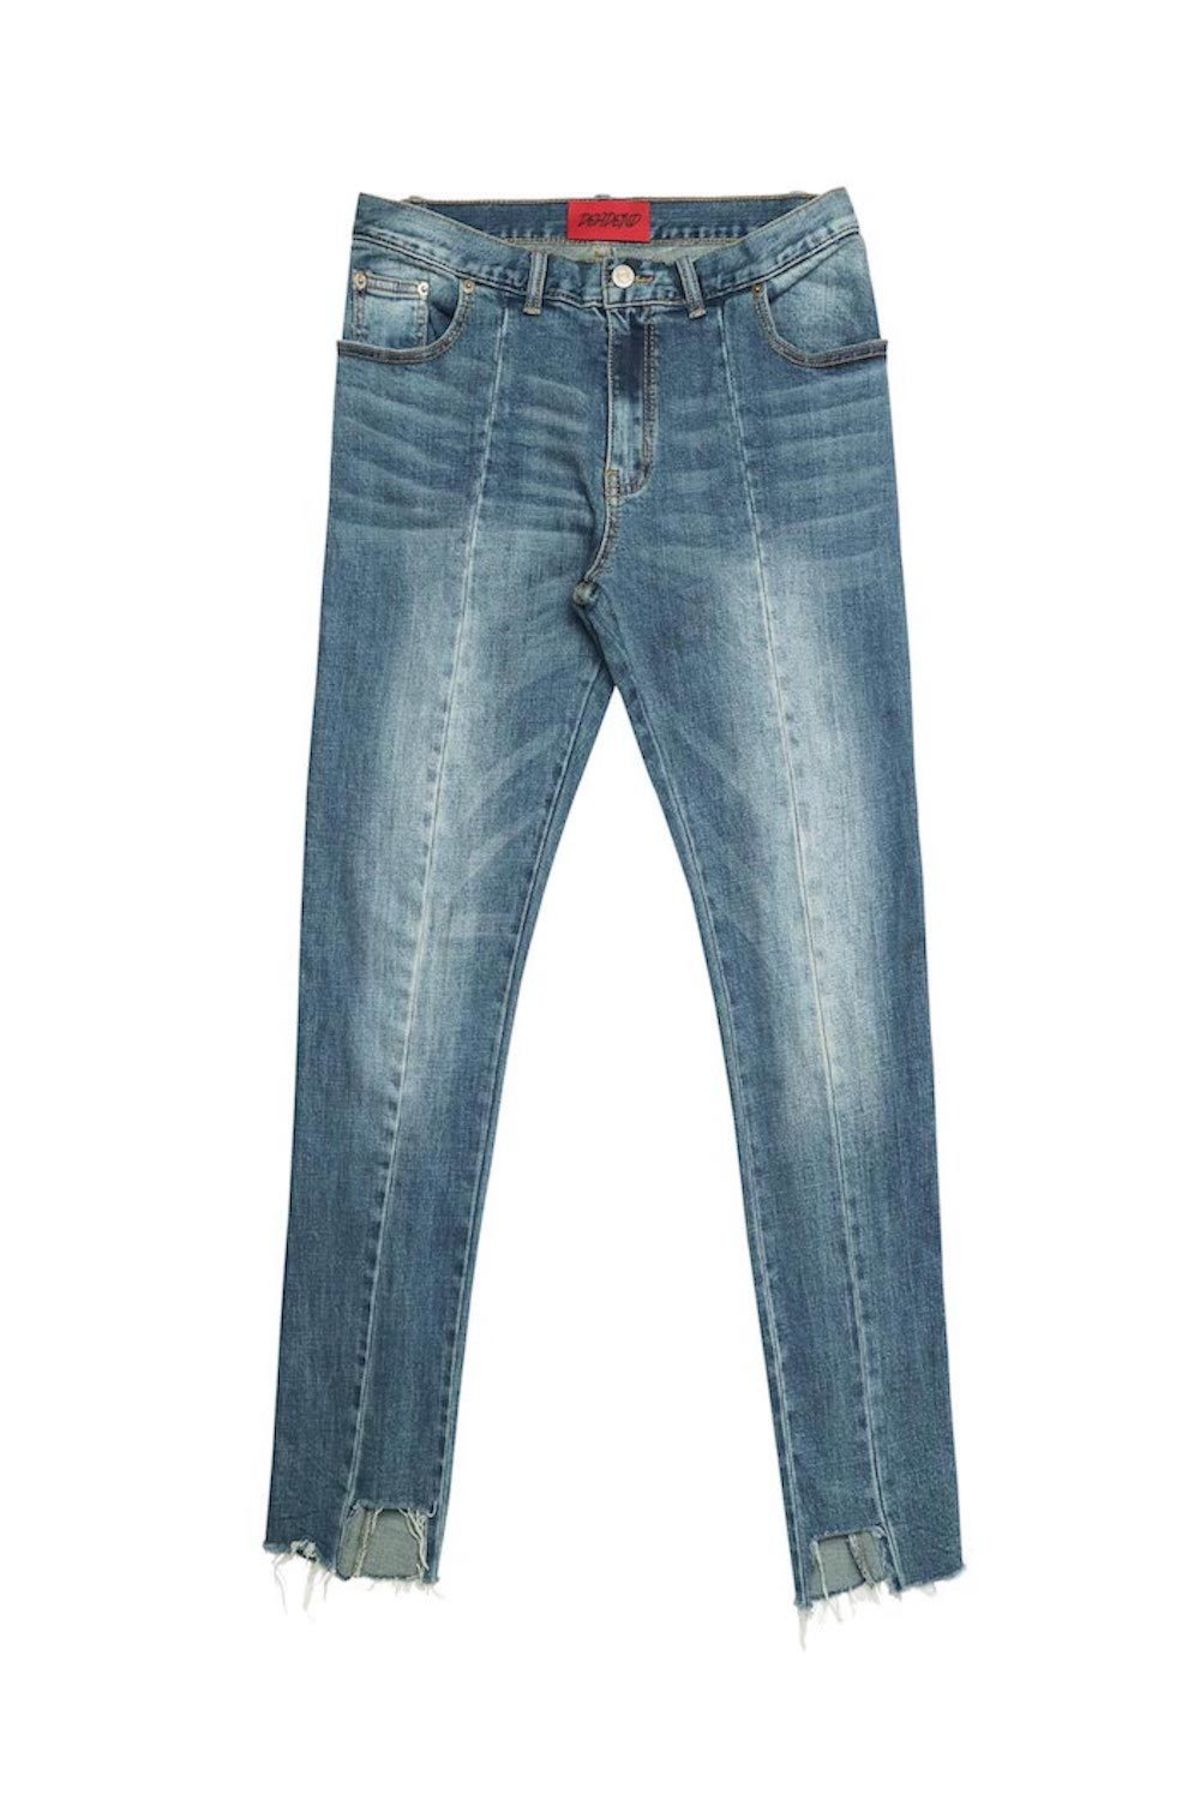 IMBALANCE CROPPED JEANS